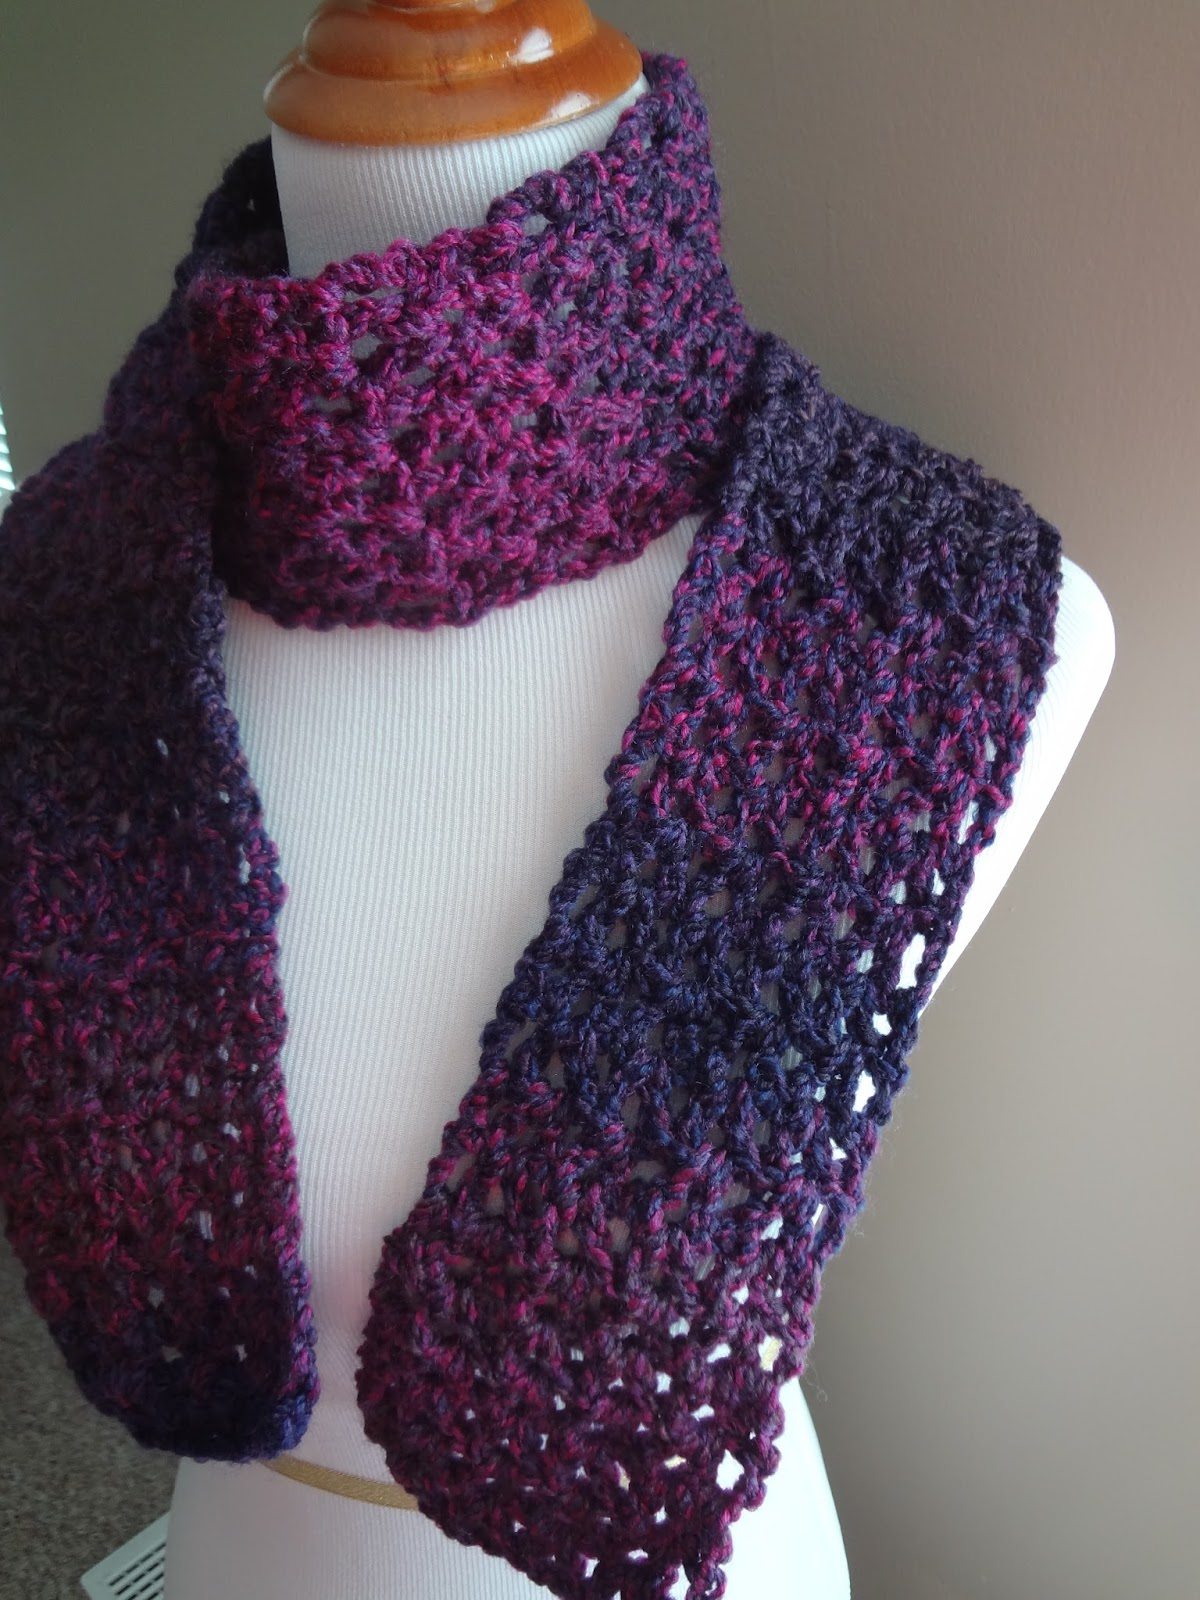 Adventures in Stitching Free Crochet PatternBlueberry Pie Scarf Free Pattern For Crocheted Scarf